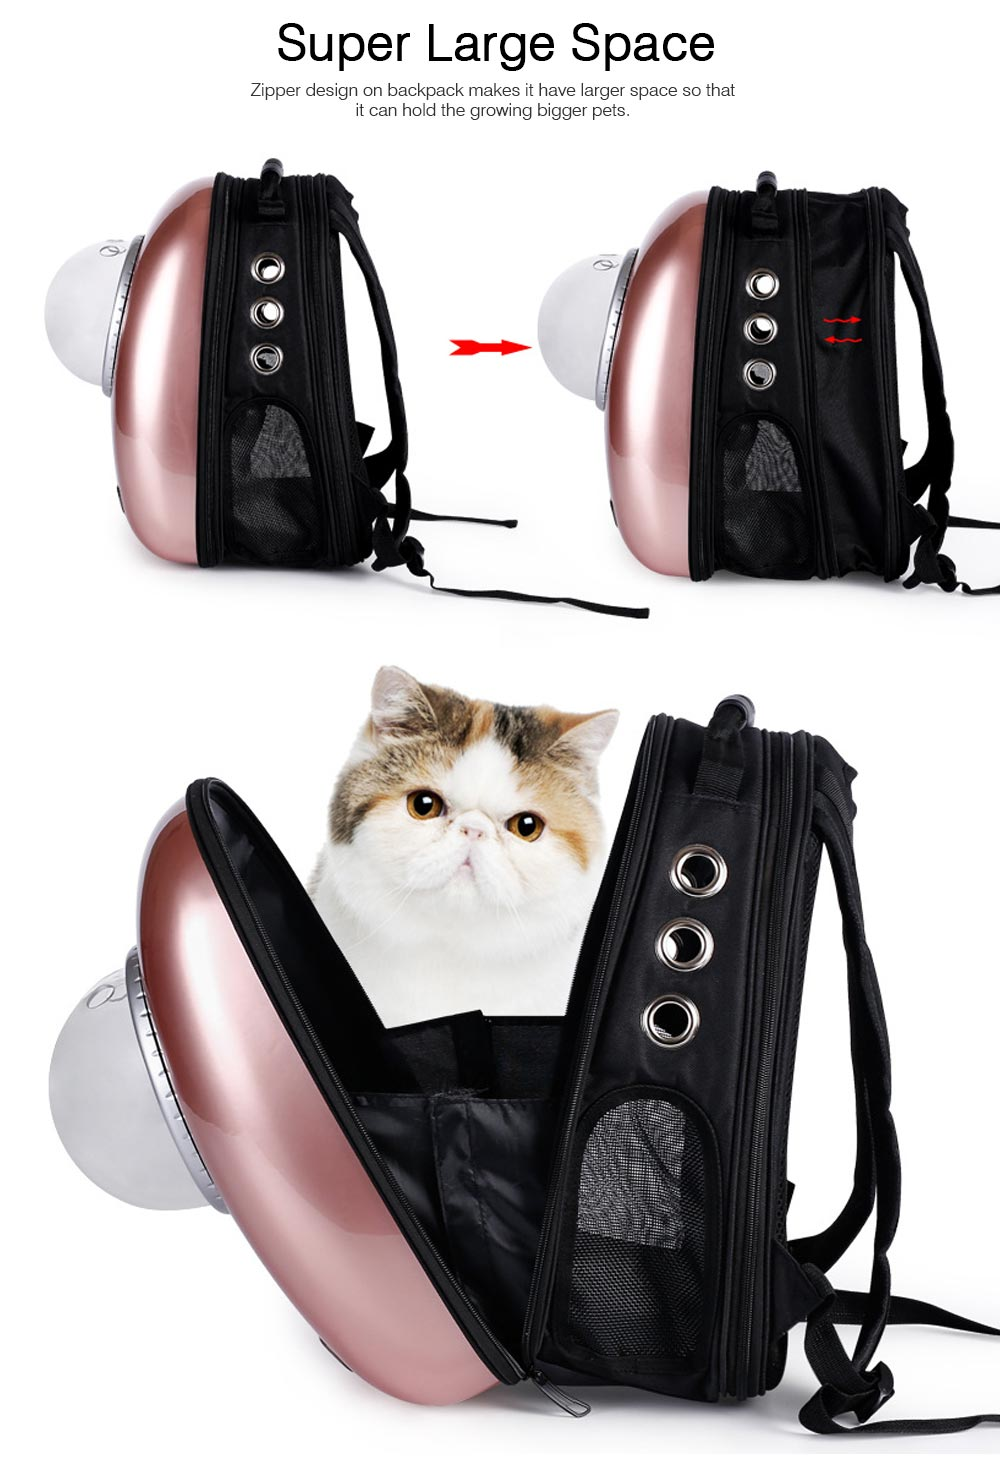 Fashionable Large Pet Backpack for Moderate and Small Size Dog and Cat, Portable Travel Pet Carrier Space Capsule Bubble Design 2